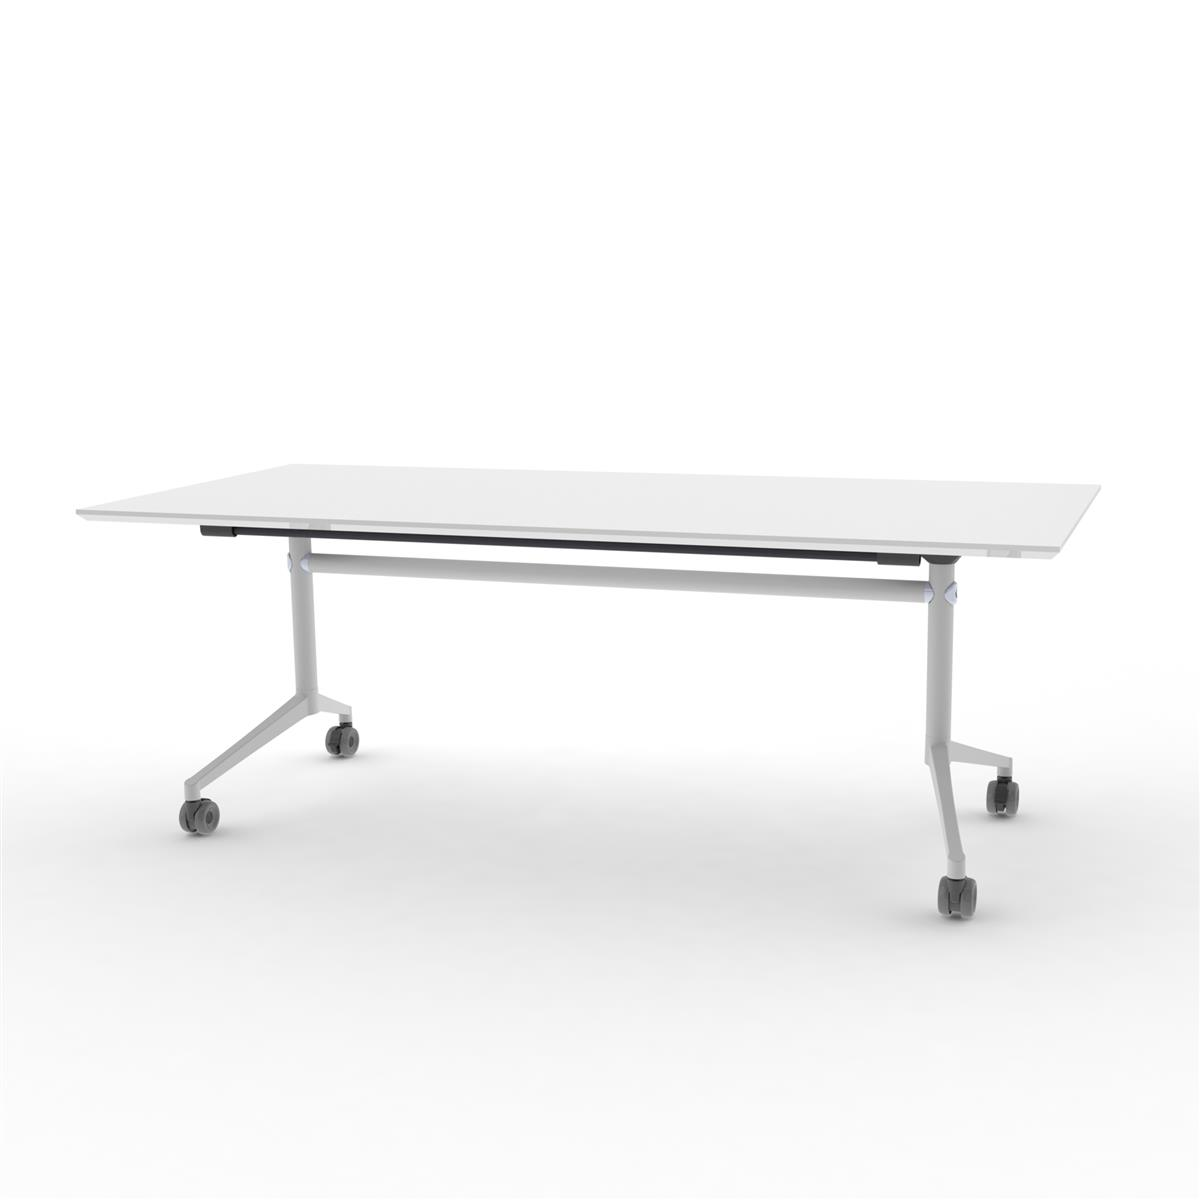 X1 Seamless Folding Table 200x90 cm med hvit bordplate og hvitlakkert understell